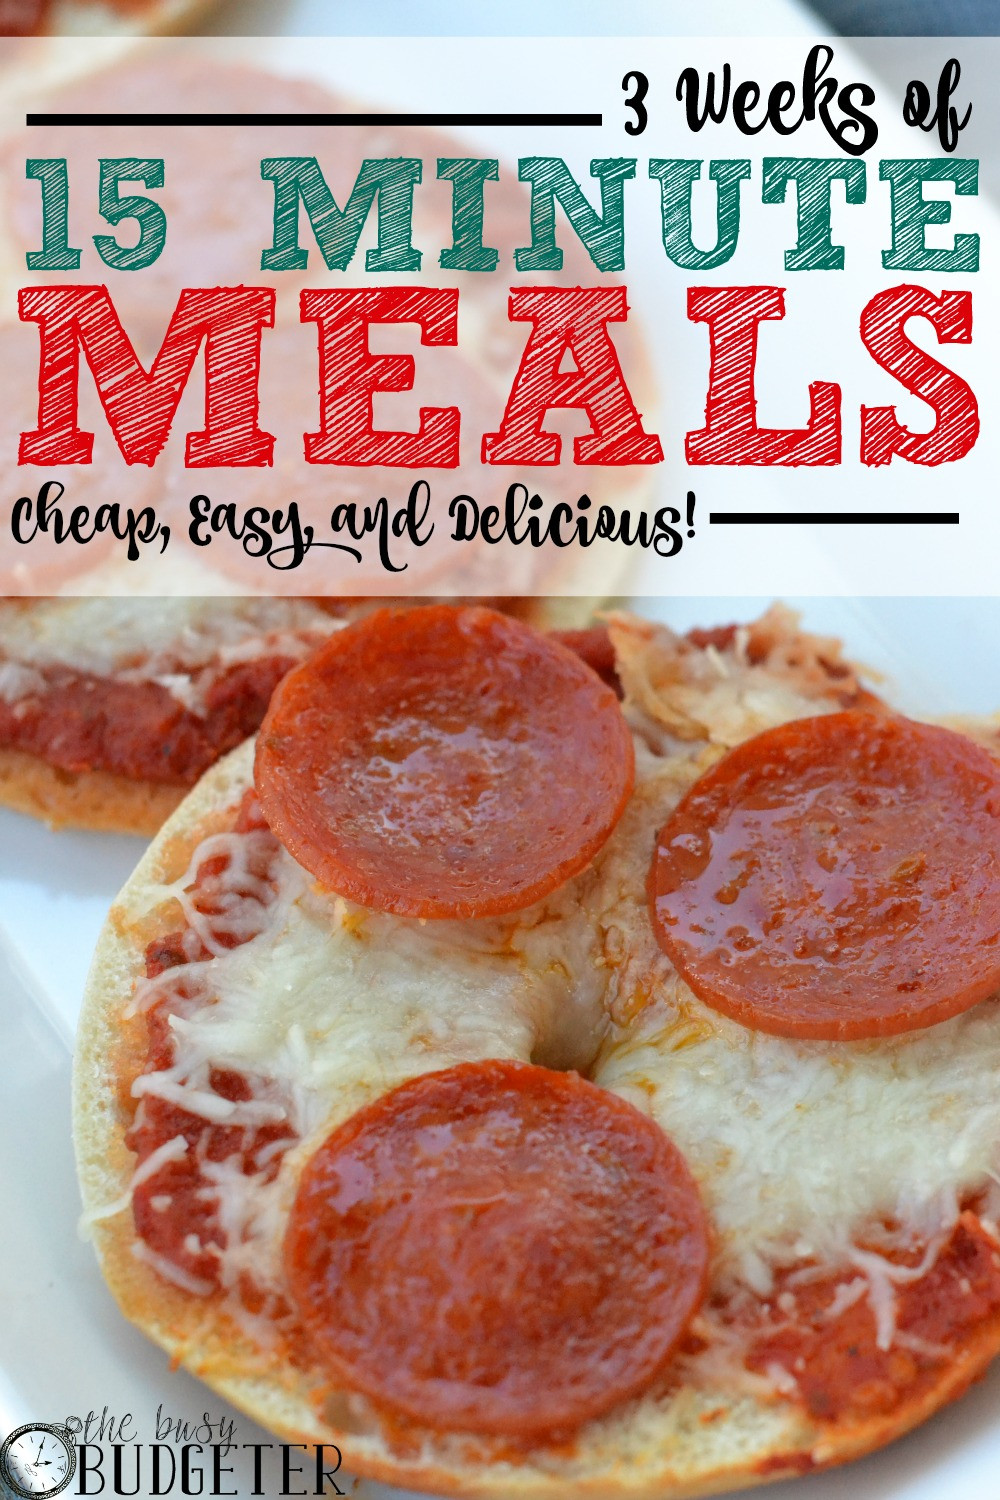 Easy Cheap Dinners  3 Weeks of Cheap Dinners ready in under 15 minutes The